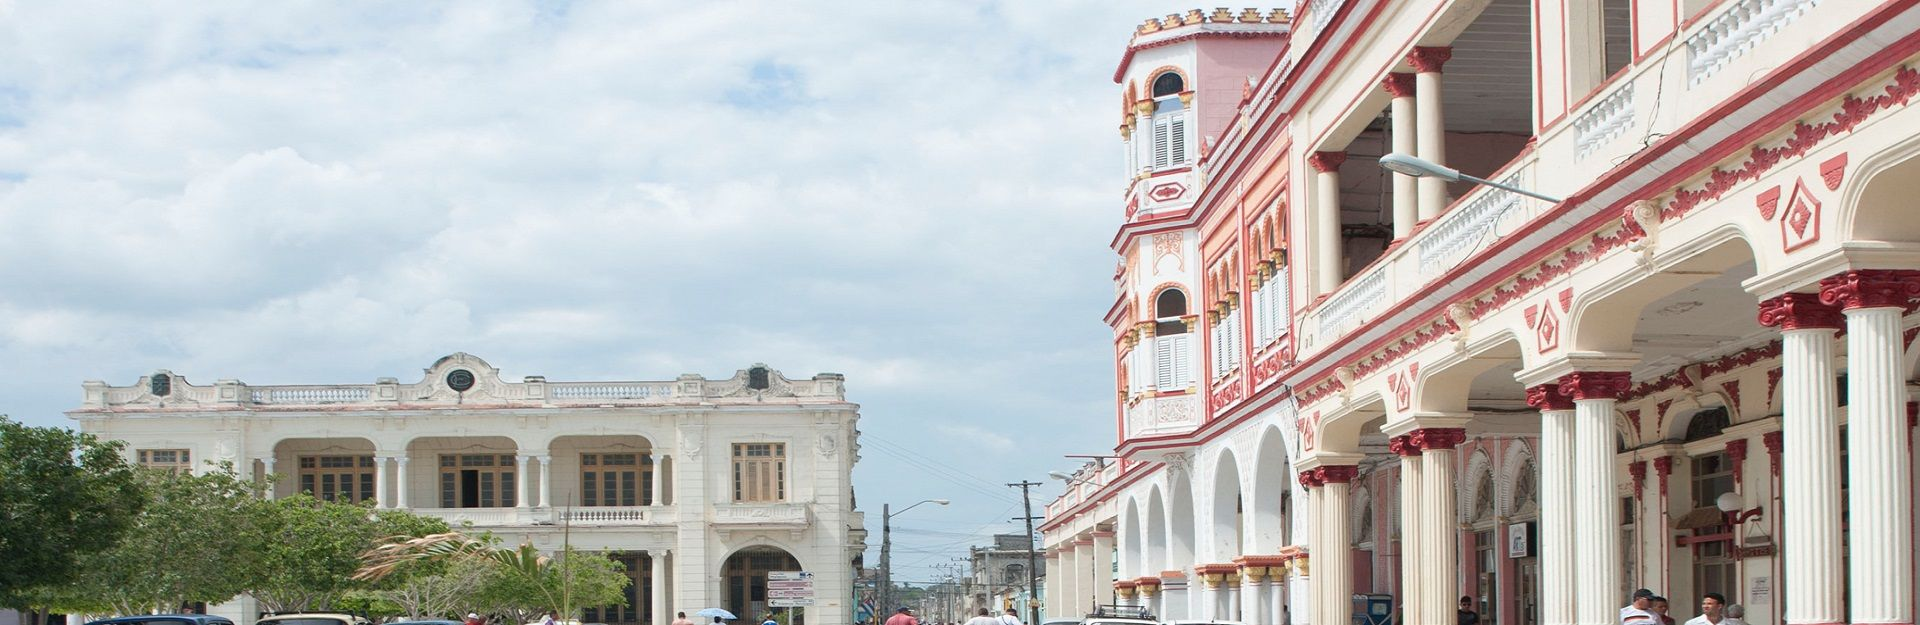 Architecture of Manzanillo, Granma, Cuba Travel